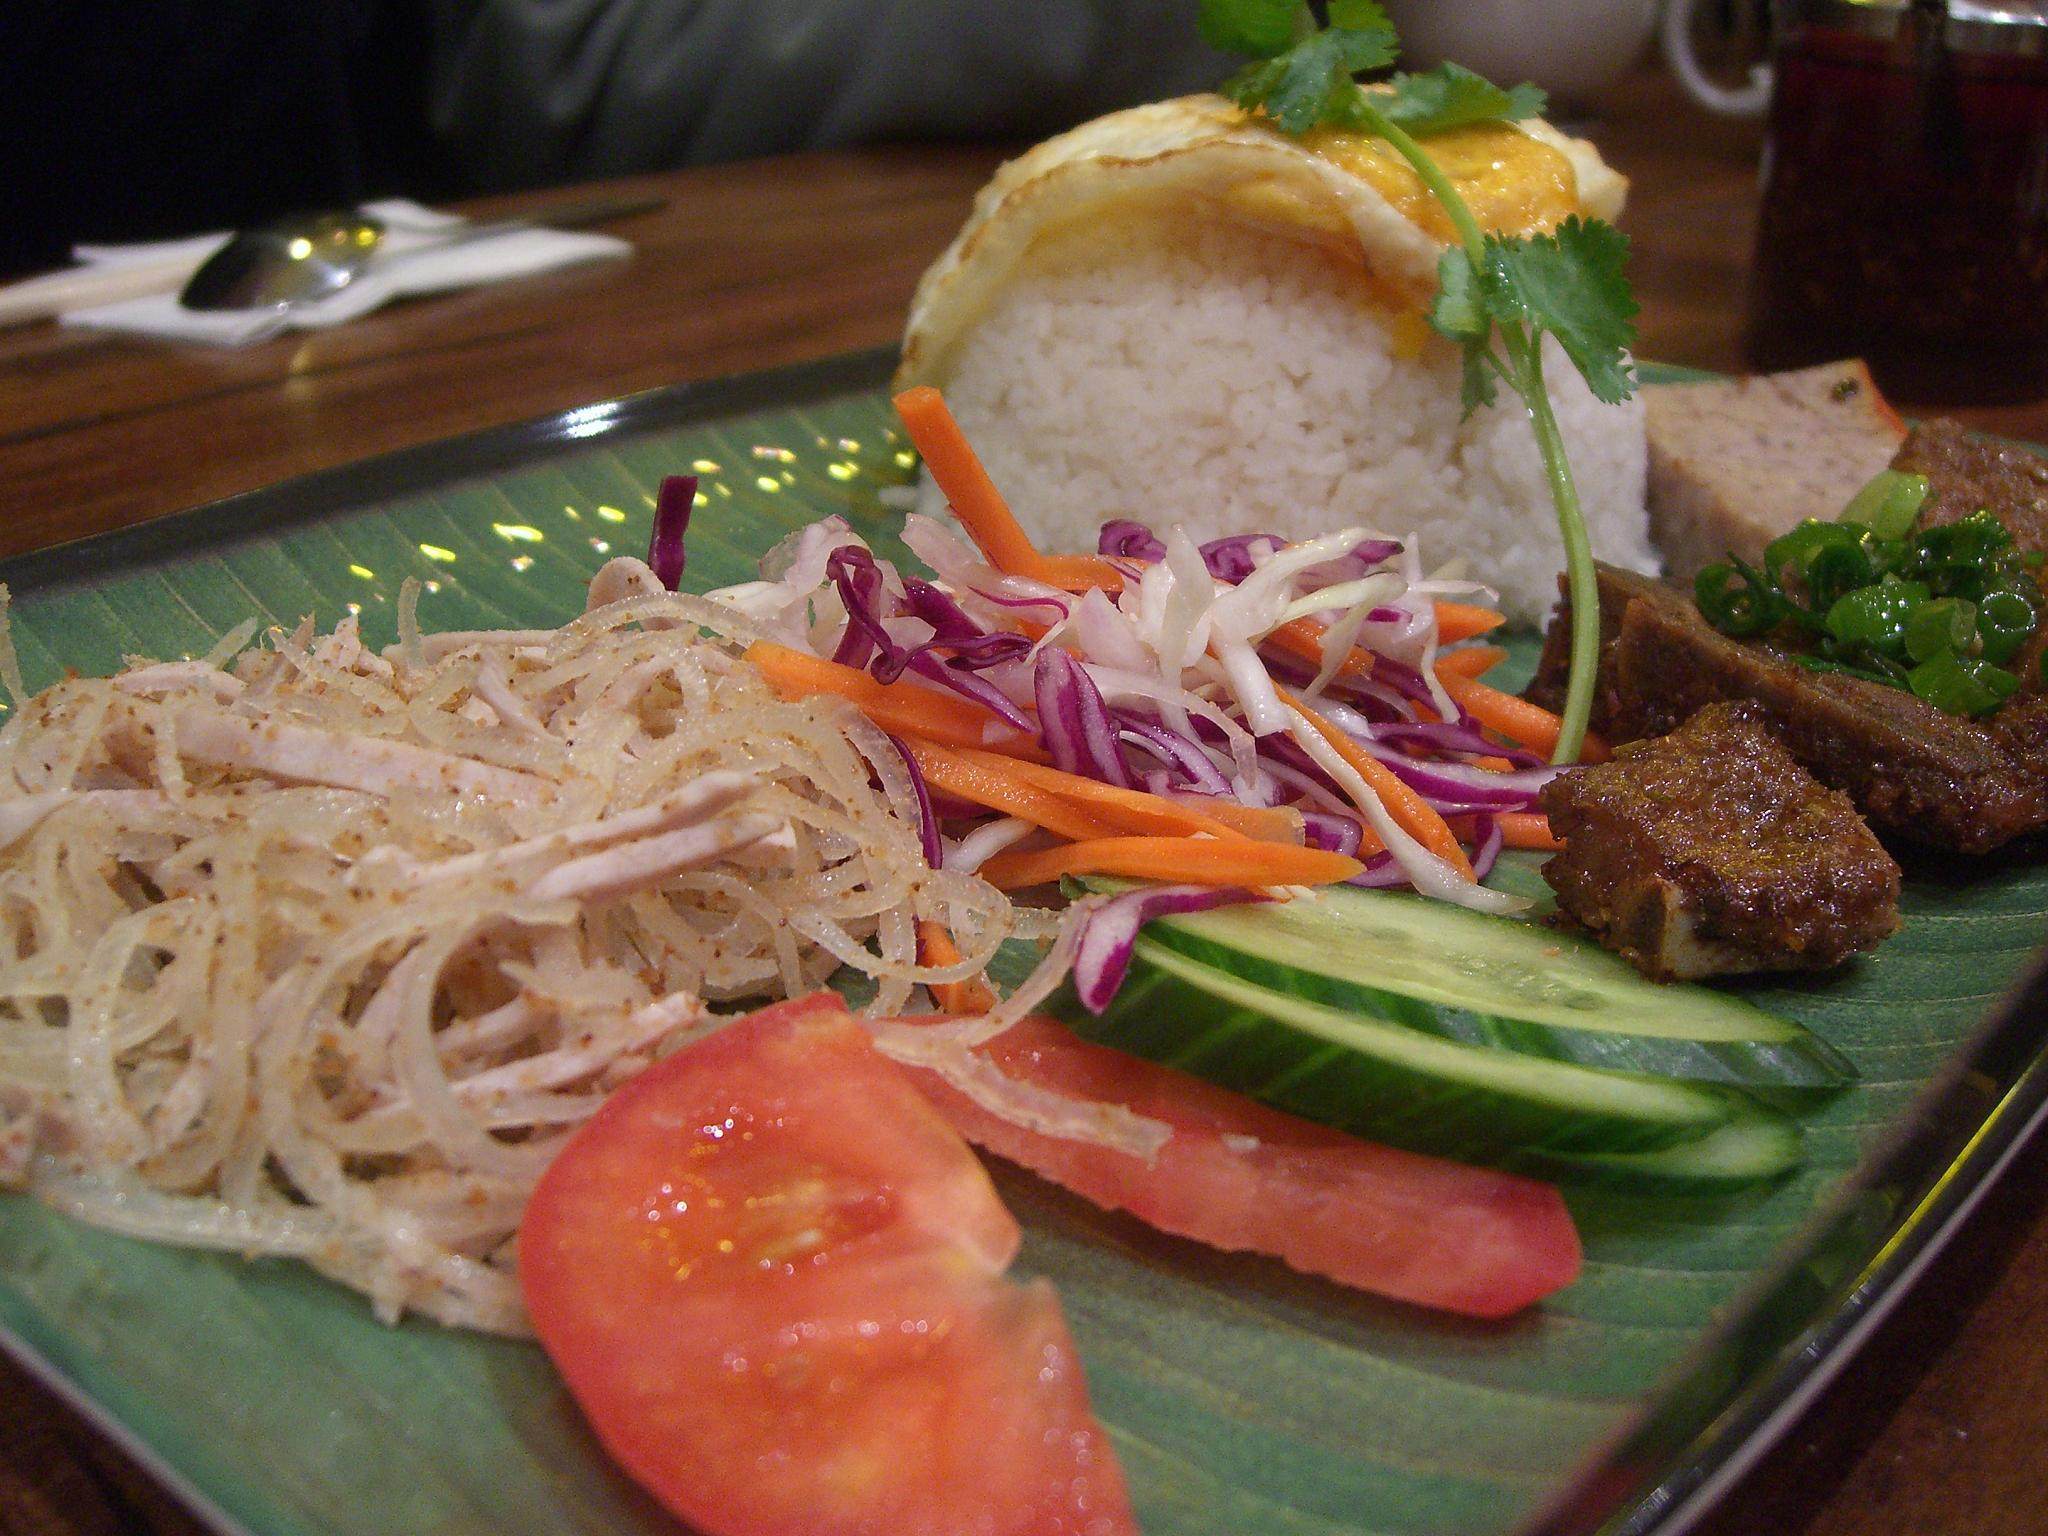 Asian Cuisine 11 Vietnamese Cuisines that Will Satisfy You